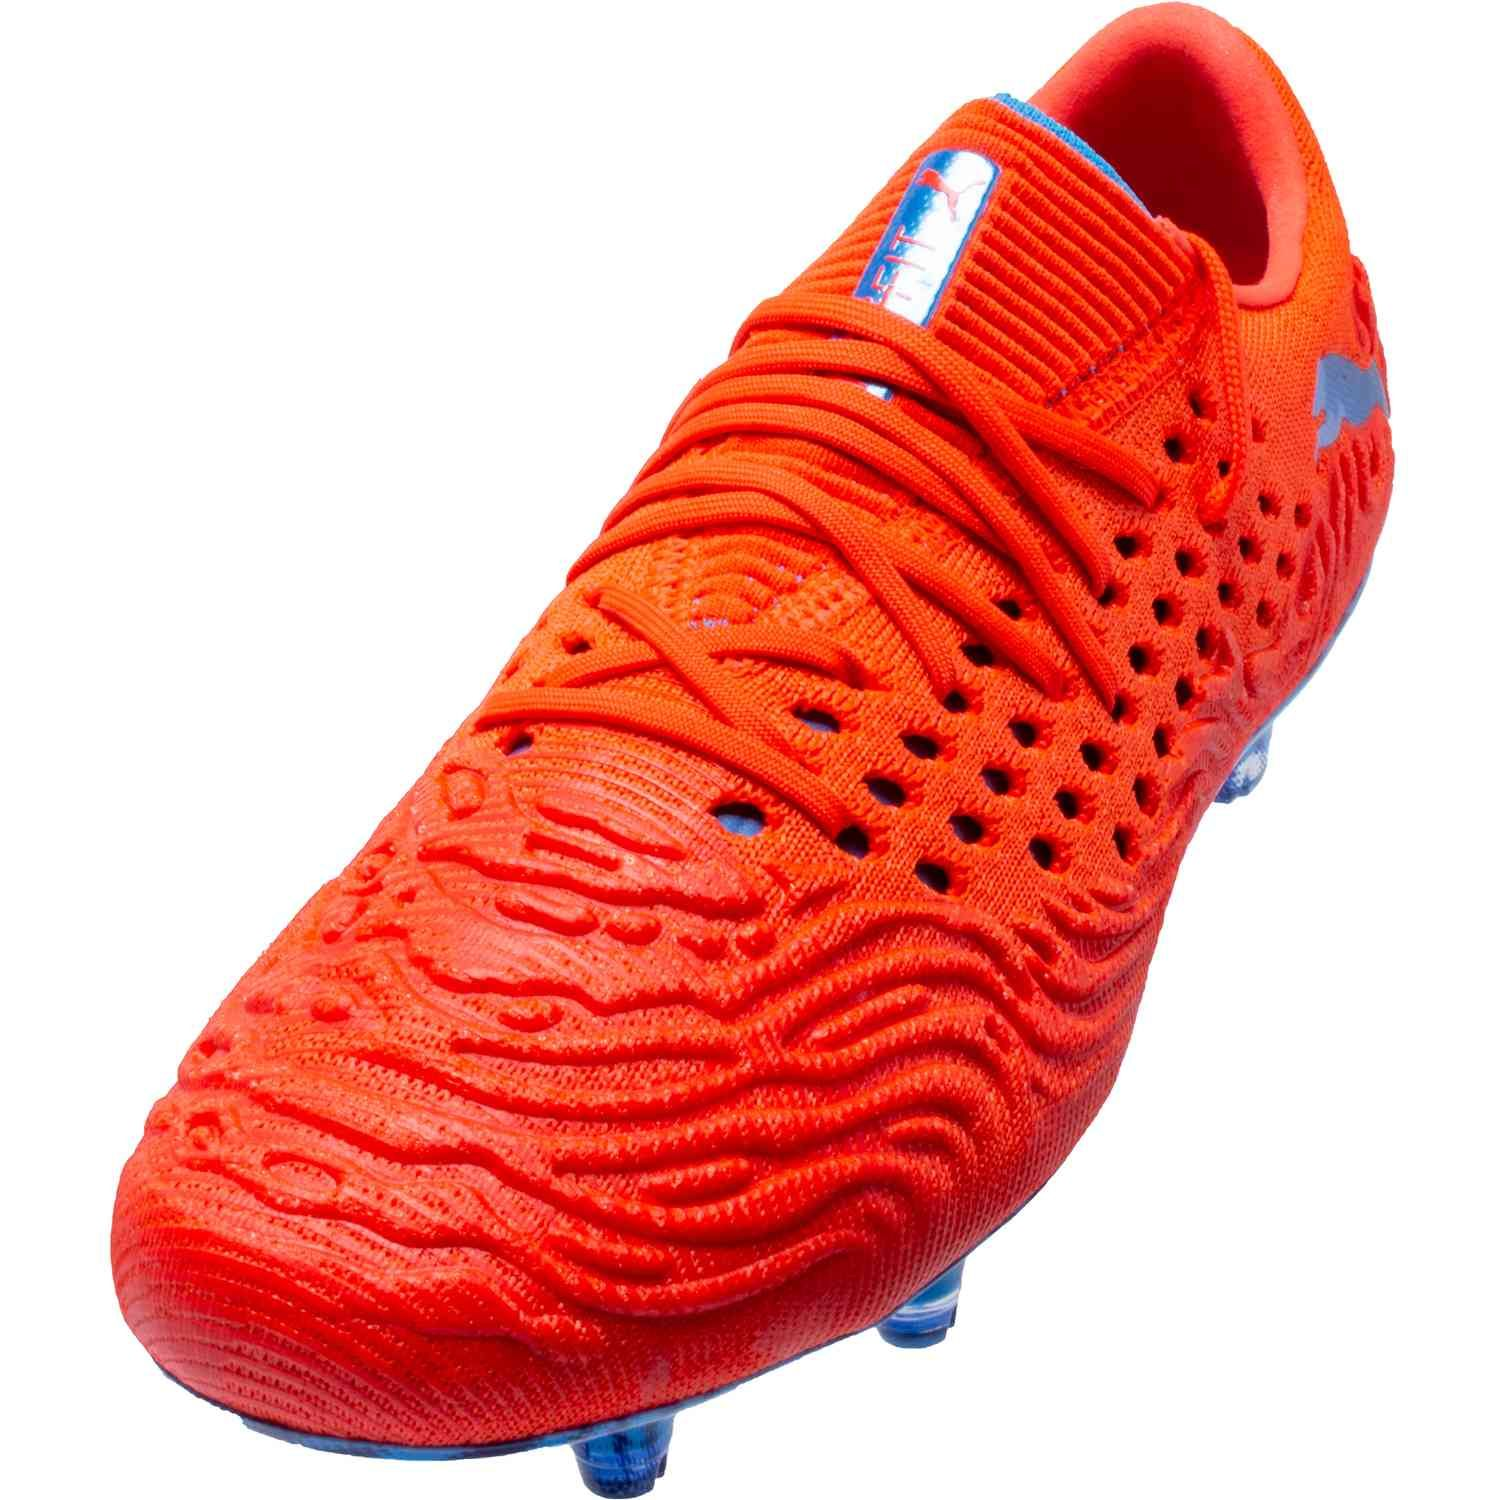 big sale 581ce 32bf5 Nike Jr. SuperflyX 6 Academy TF Little Big Kids  Artificial-Turf Soccer  Cleat by Nike. MercurialX ...